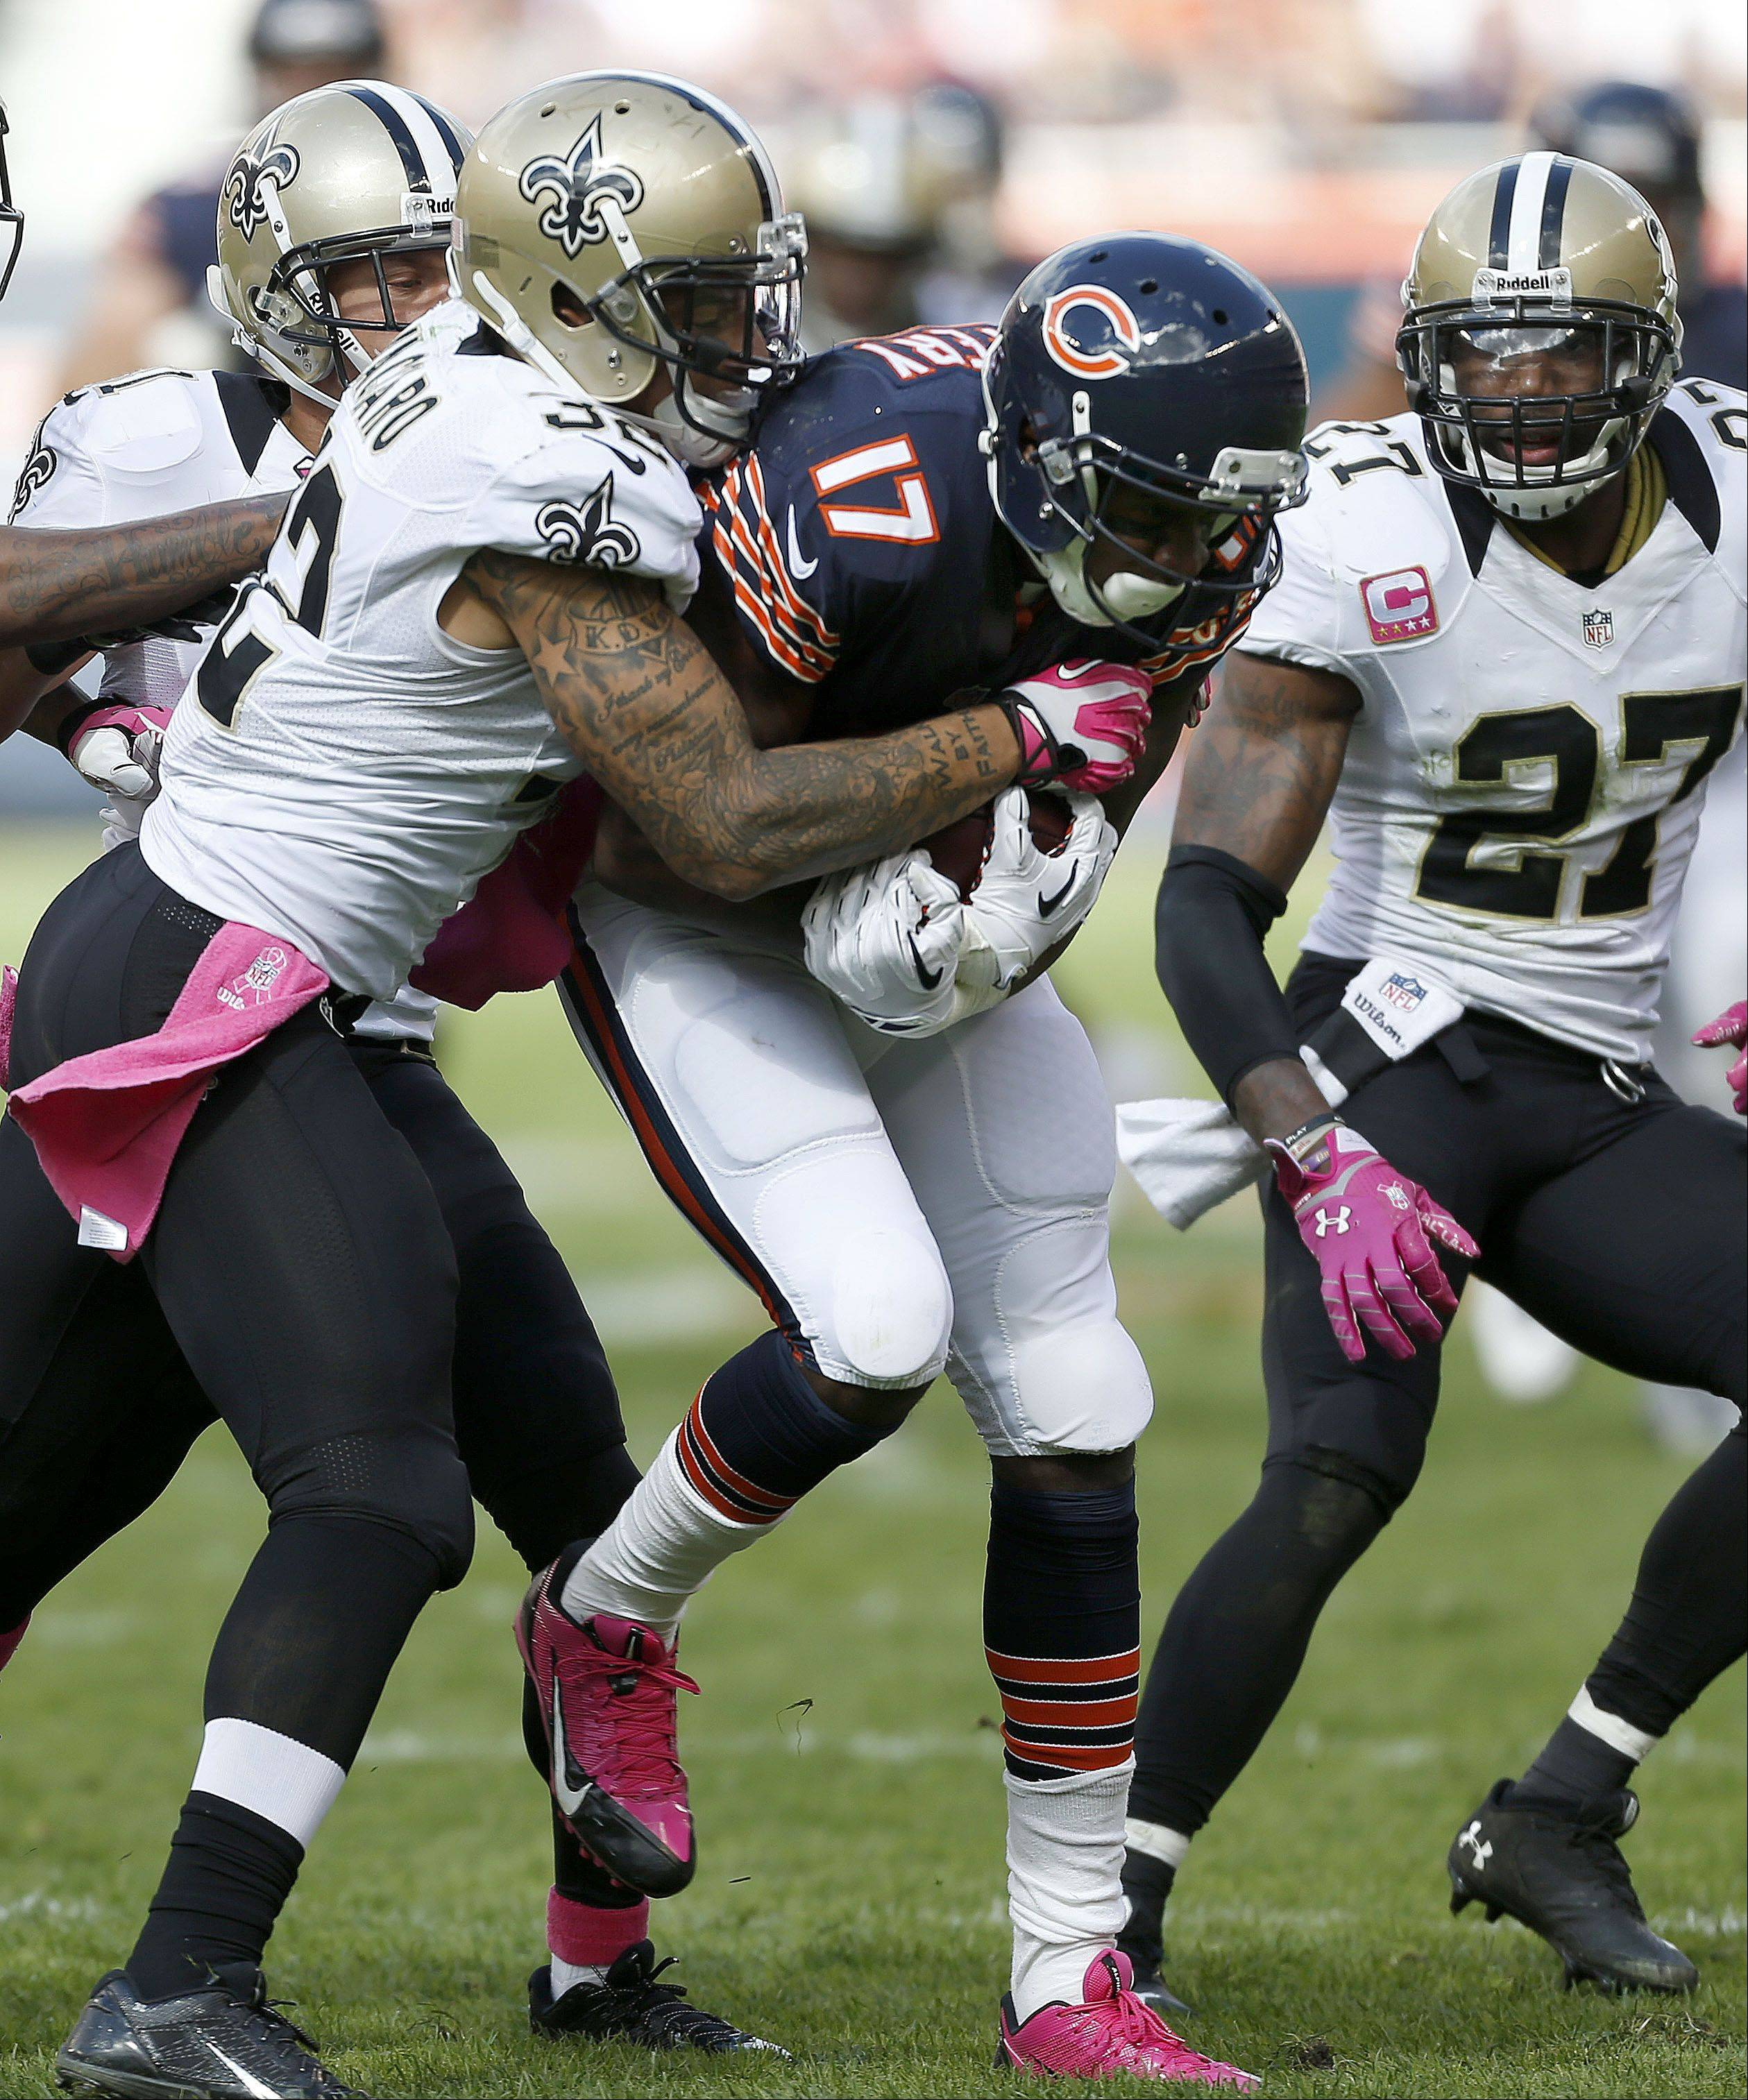 Chicago Bears wide receiver Alshon Jeffery runs after a catch during their 26-18 loss Sunday.